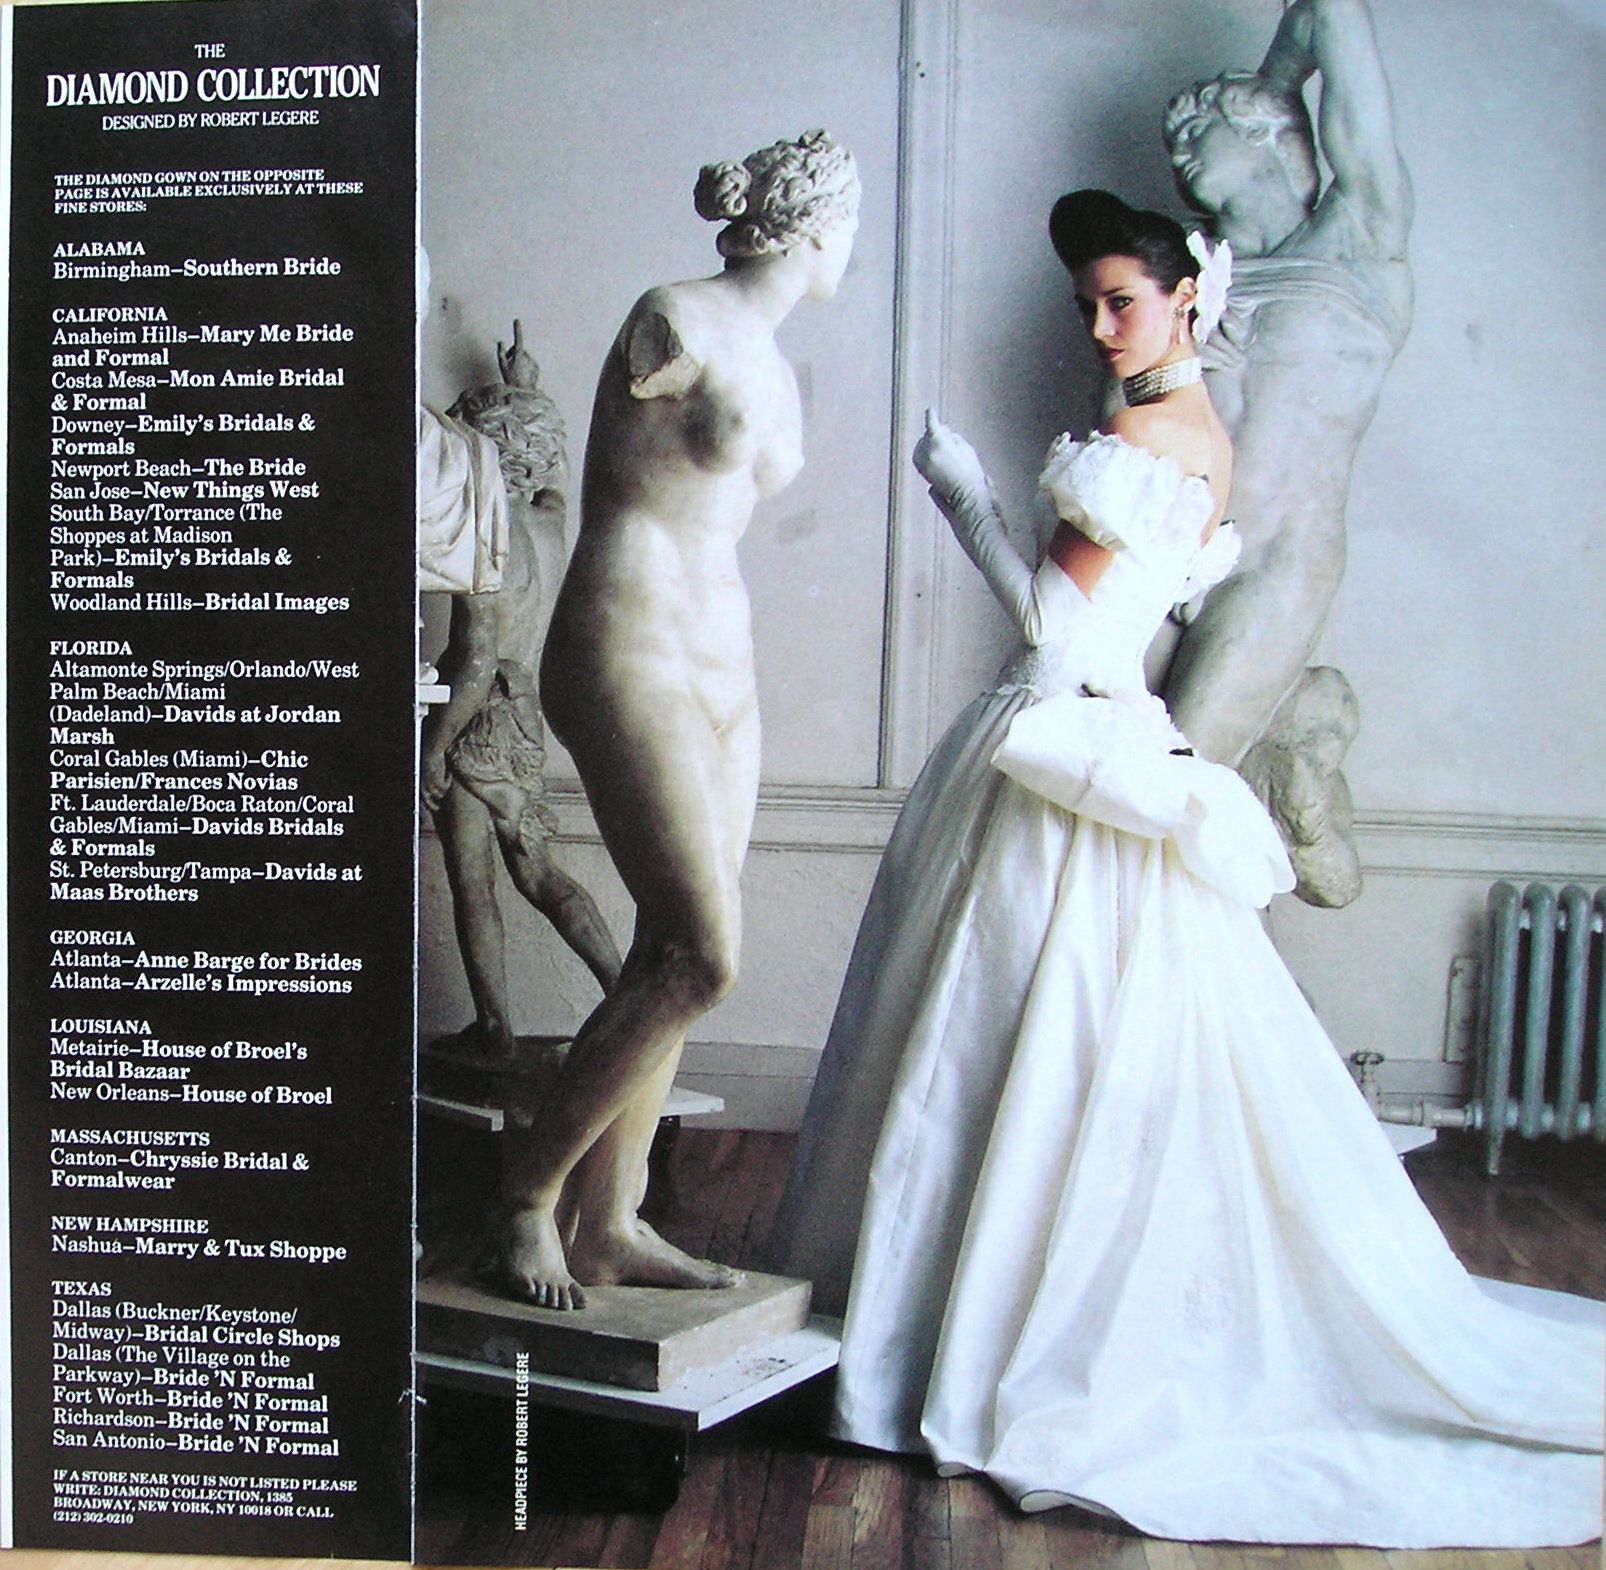 My Wedding Dress 1987 Robert Legere For The Diamond Collection